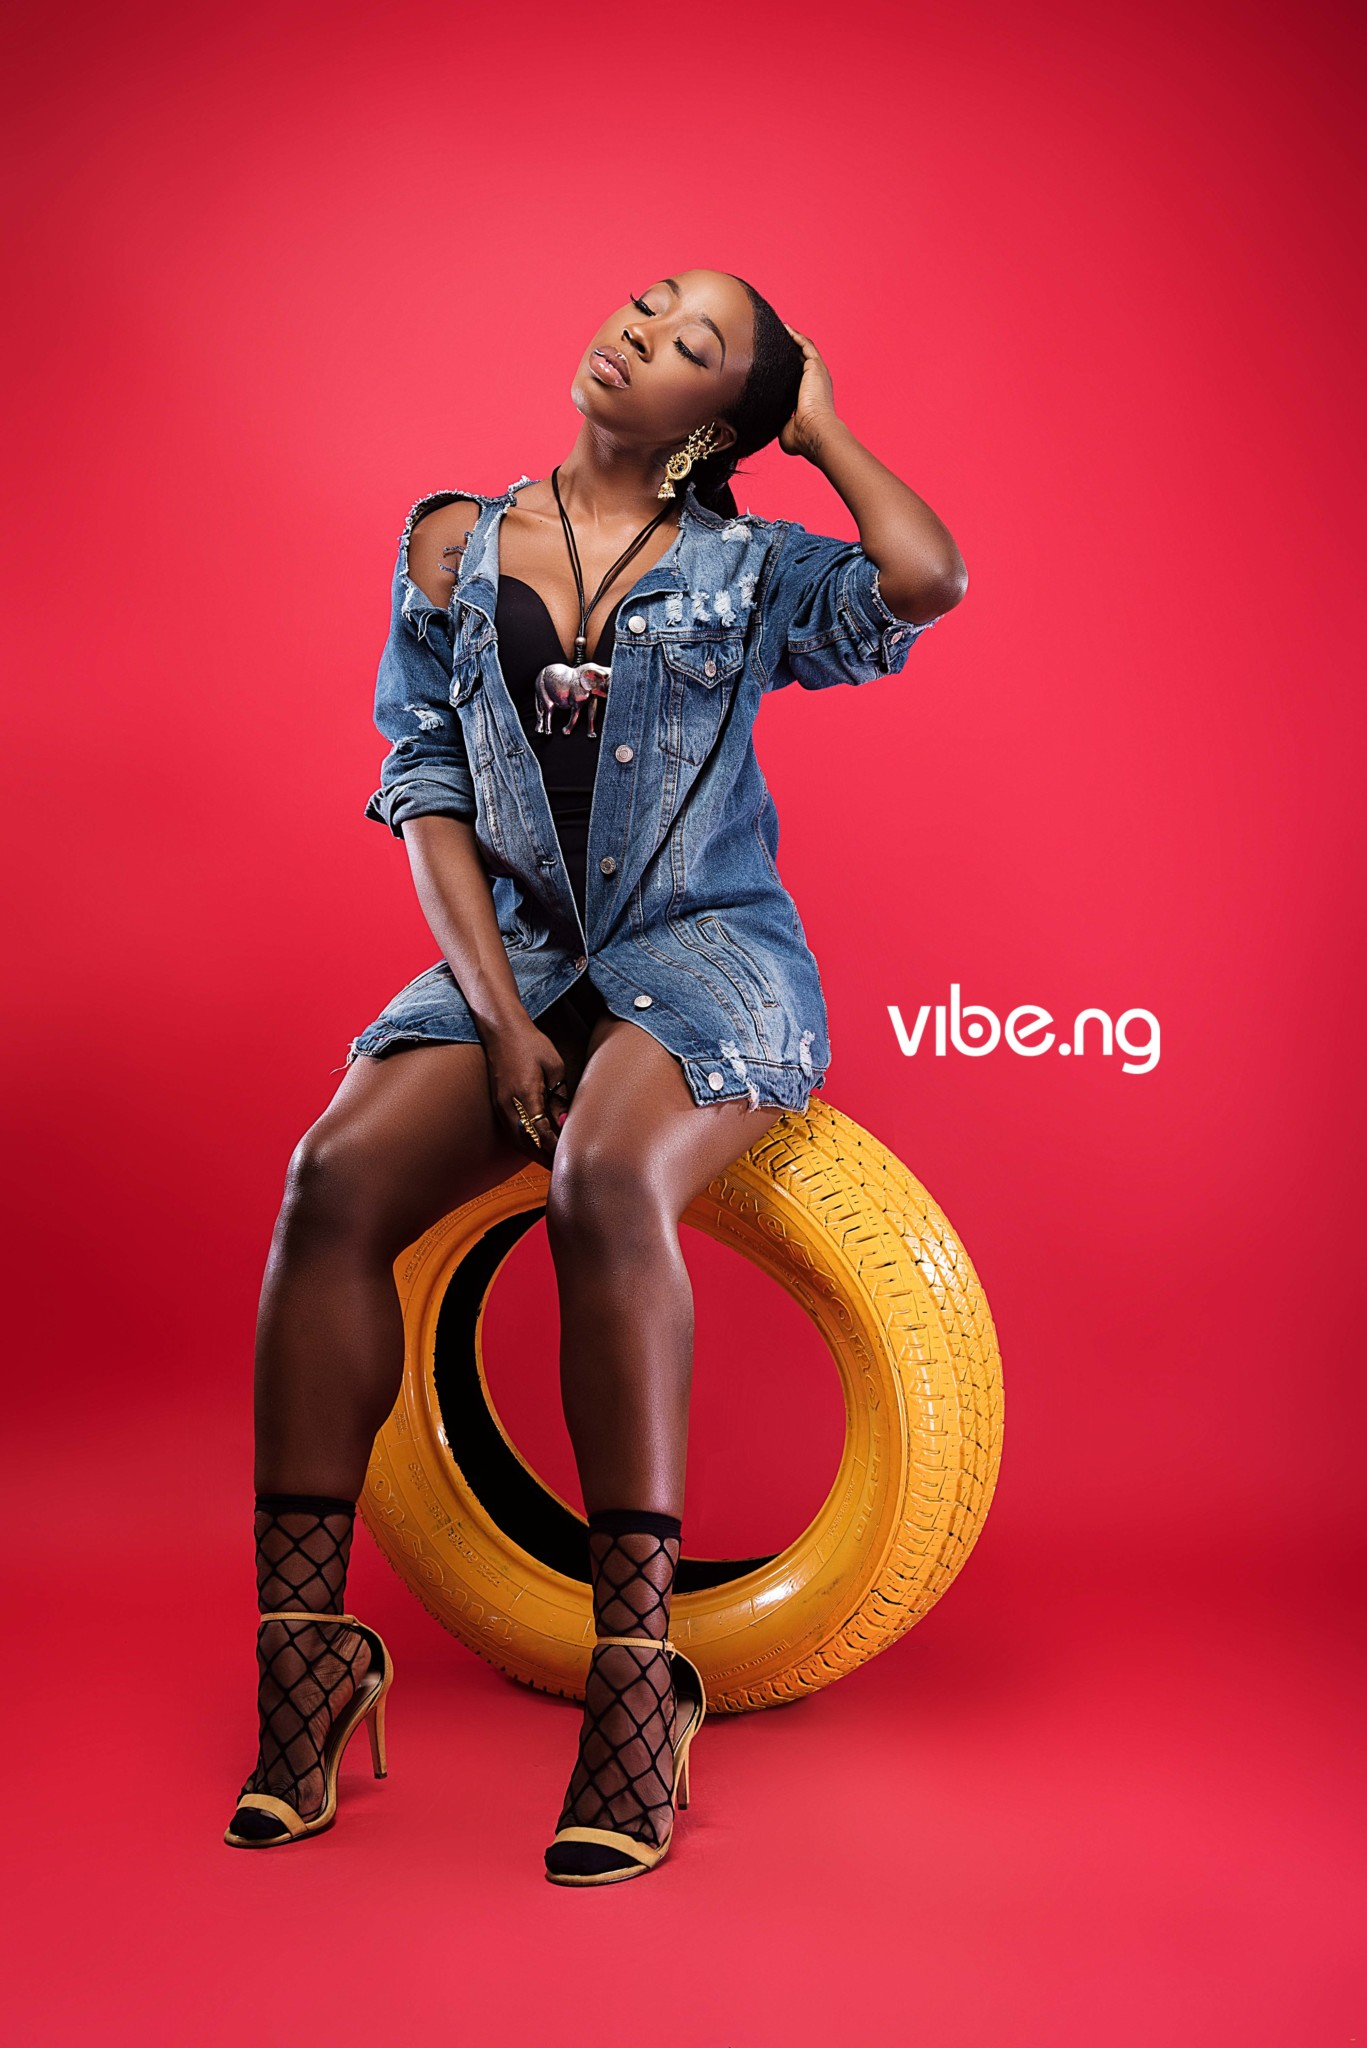 Too Much Sauce! Beverly Naya is Hot on the Cover of Vibe.ng Magazine (8)